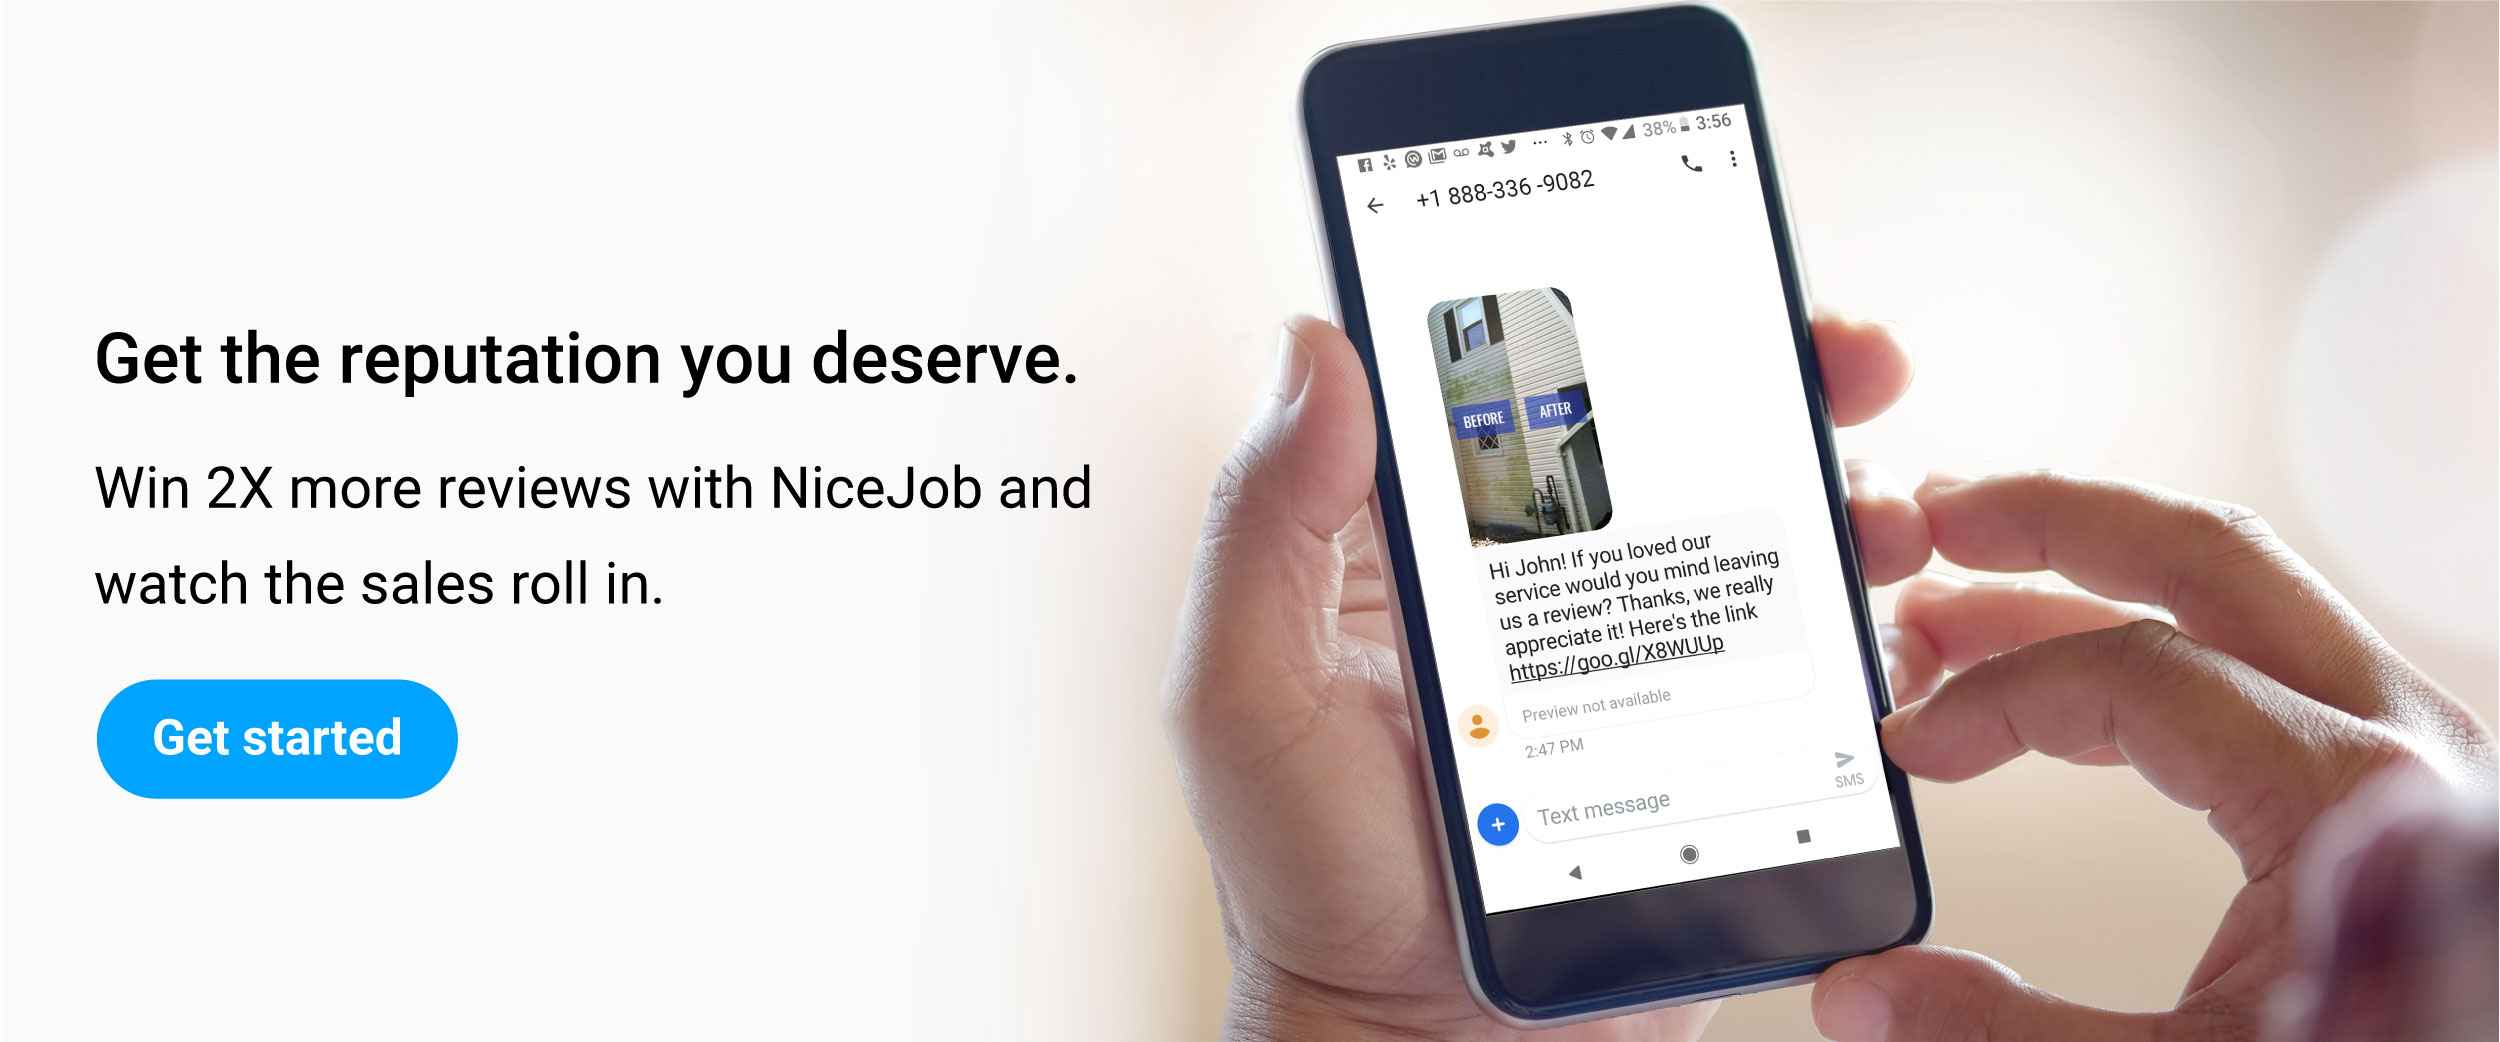 Banner promoting NiceJob's reputation marketing software to get more customer reviews.